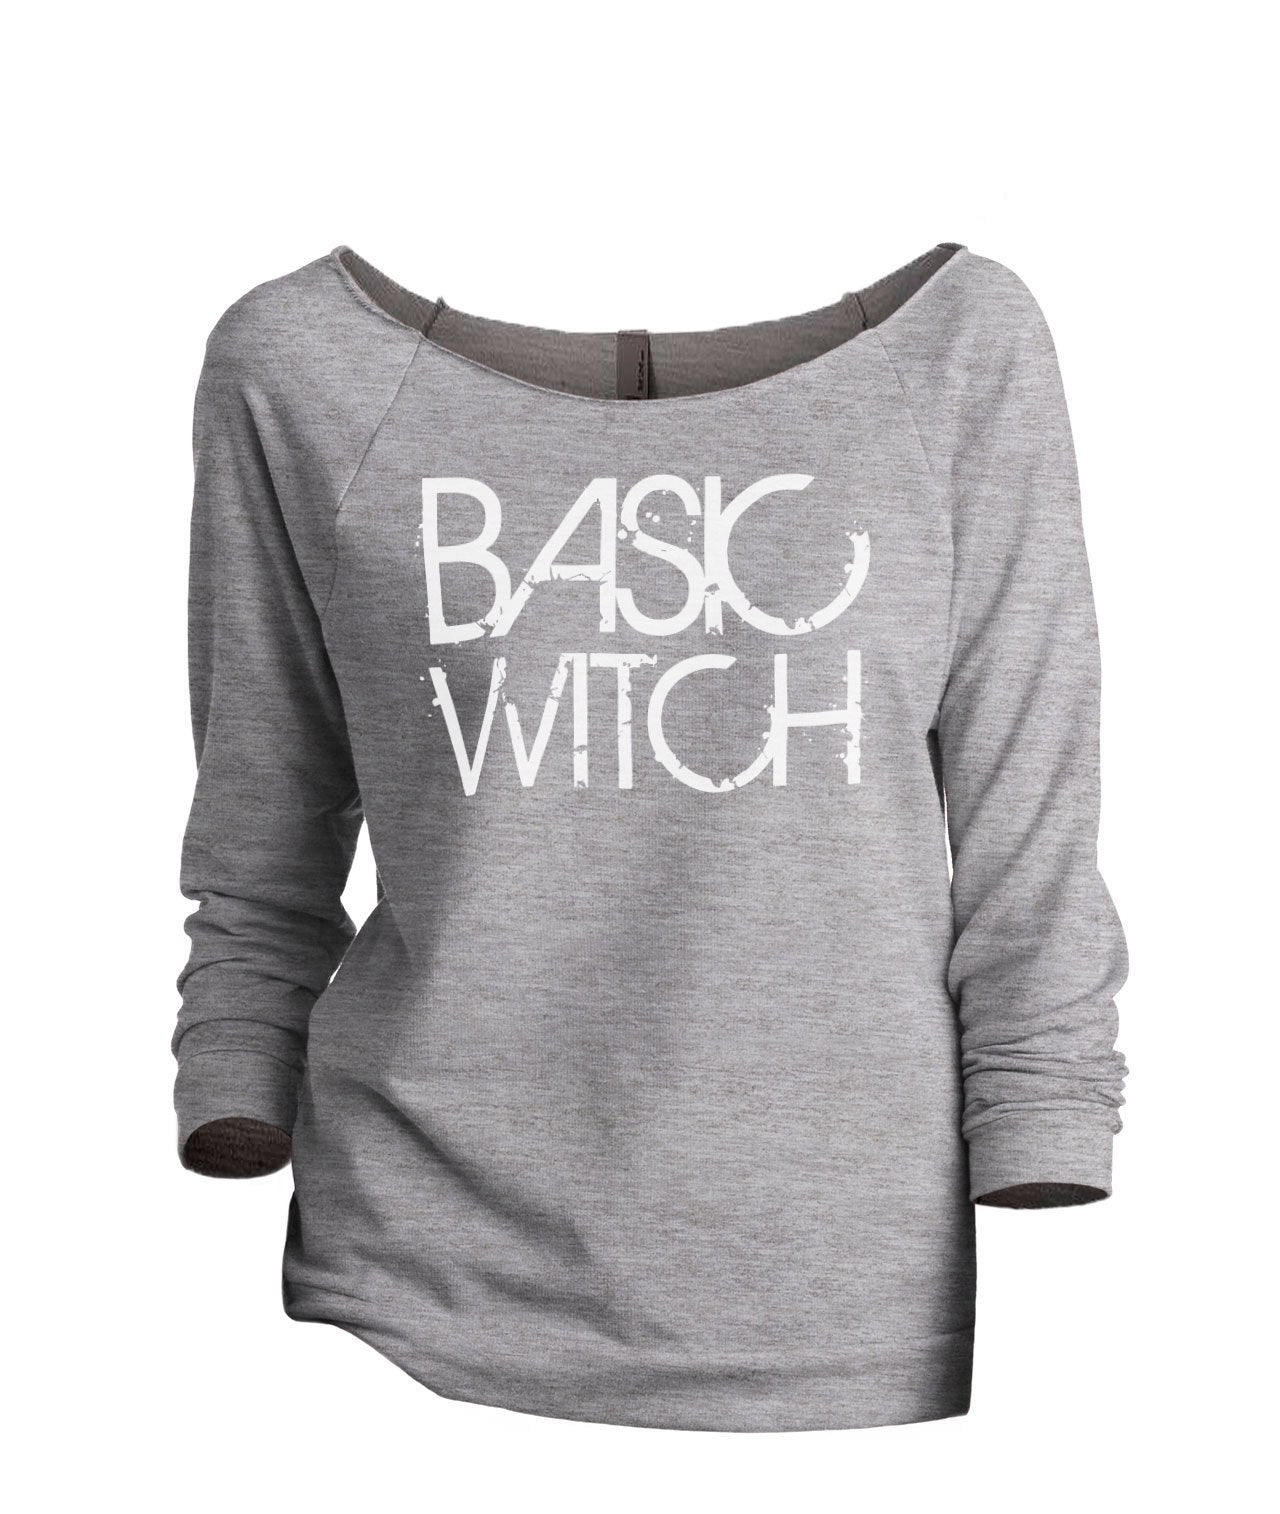 Basic Witch Women's Graphic Printed Lightweight Slouchy 3/4 Sleeves Sweatshirt Sport Grey